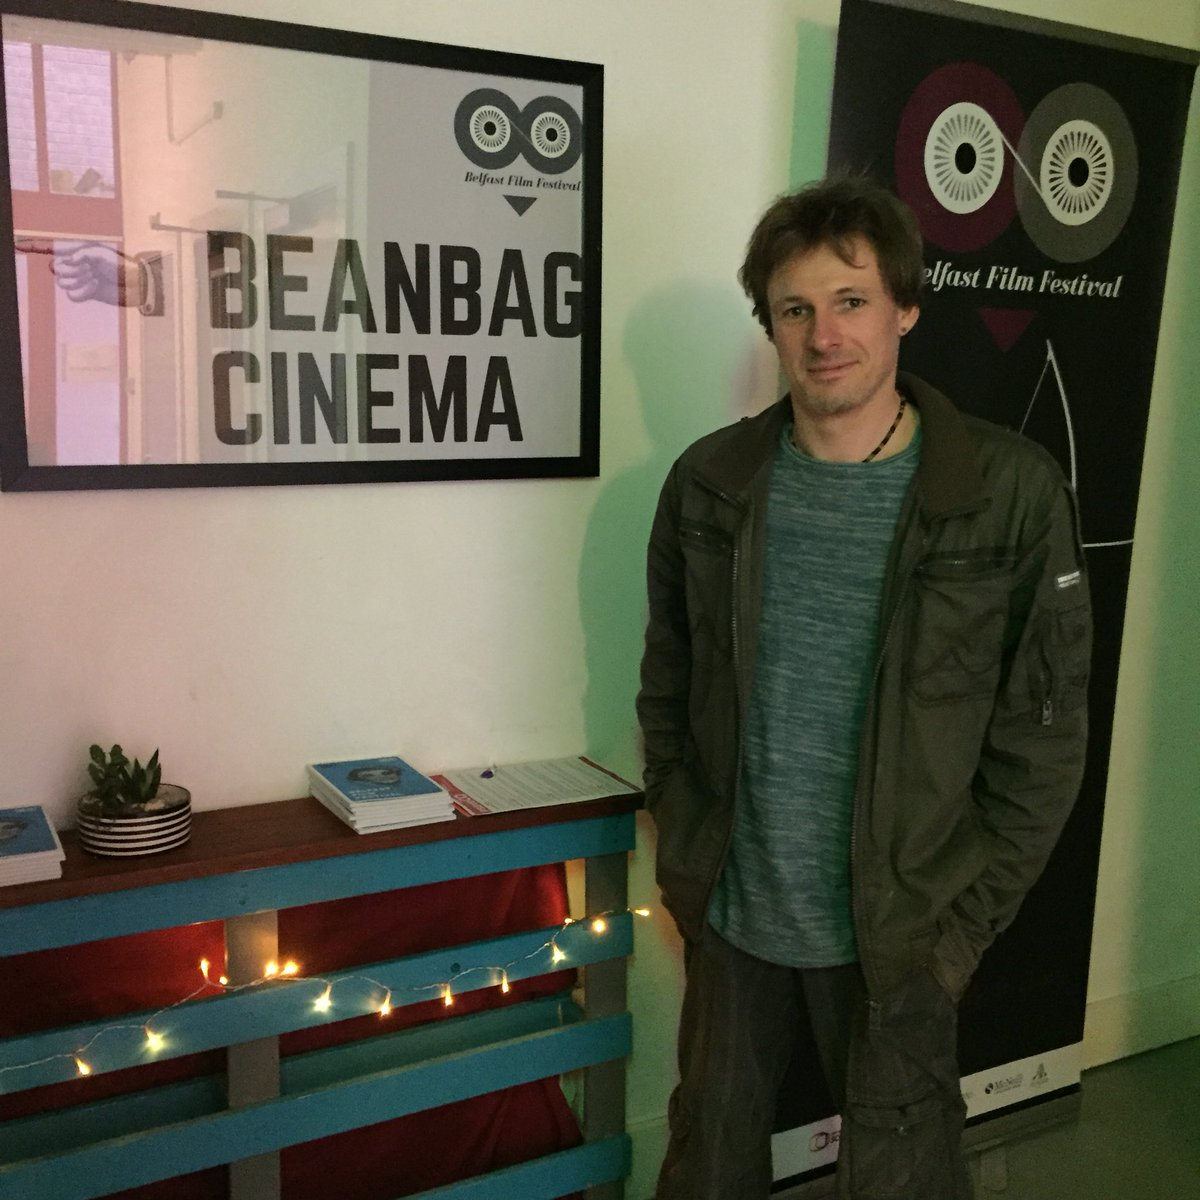 Fantastic Beanbag Cinema On Twitter This Is Jason He Is My Andrewgaddart Wooden Chair Designs For Living Room Andrewgaddartcom